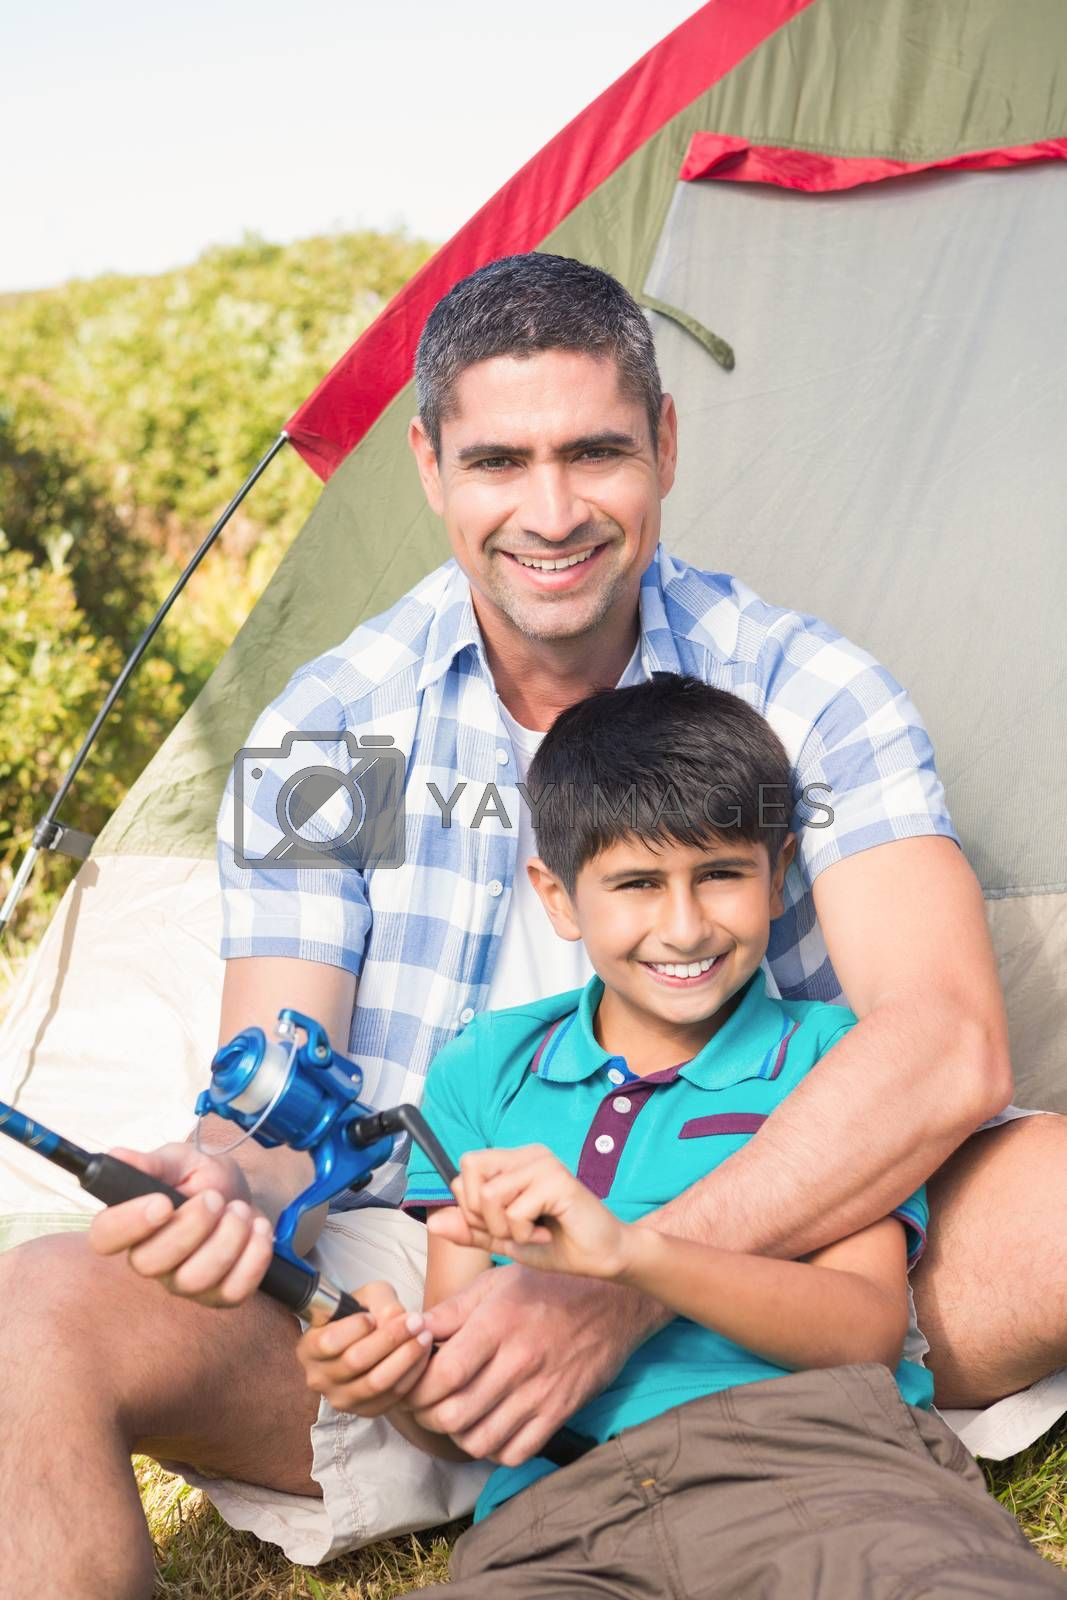 Father and son beside tent by Wavebreakmedia